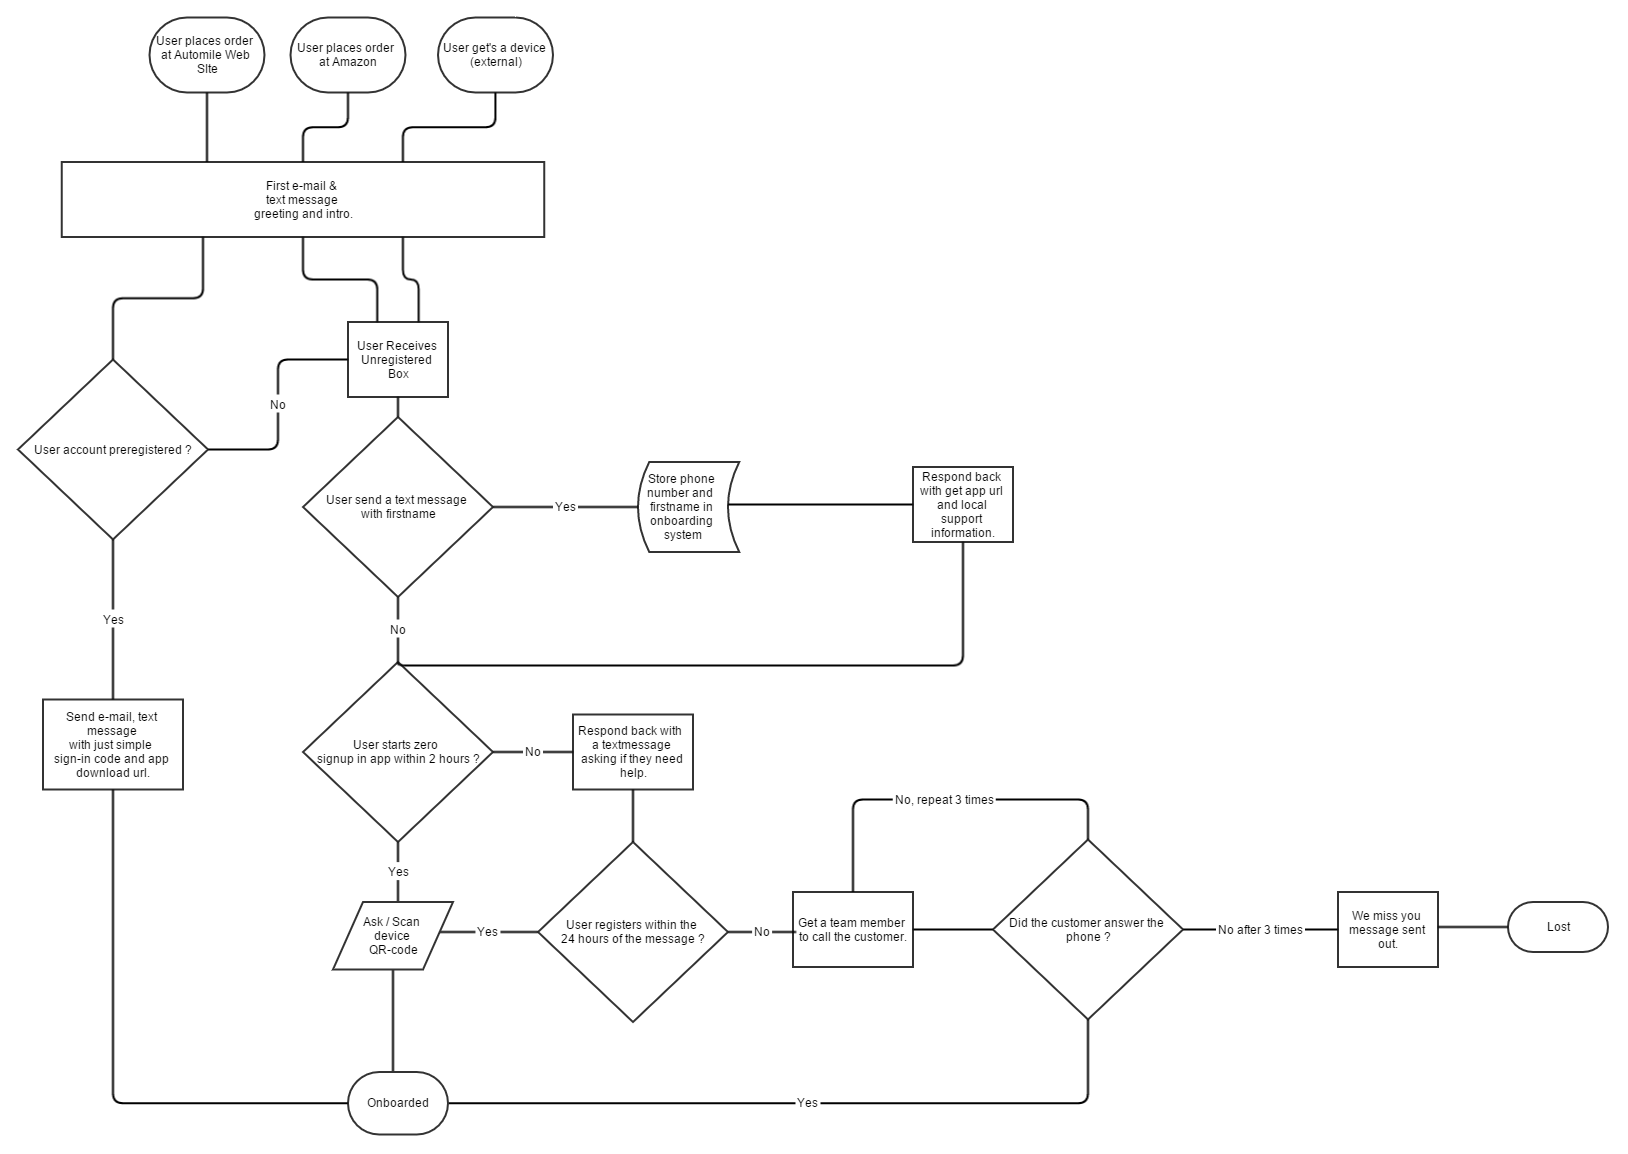 Attention to detail in saas startup onboarding dont panic just hire for iot the flowchart becomes larger but isnt so difficult to implement nvjuhfo Choice Image